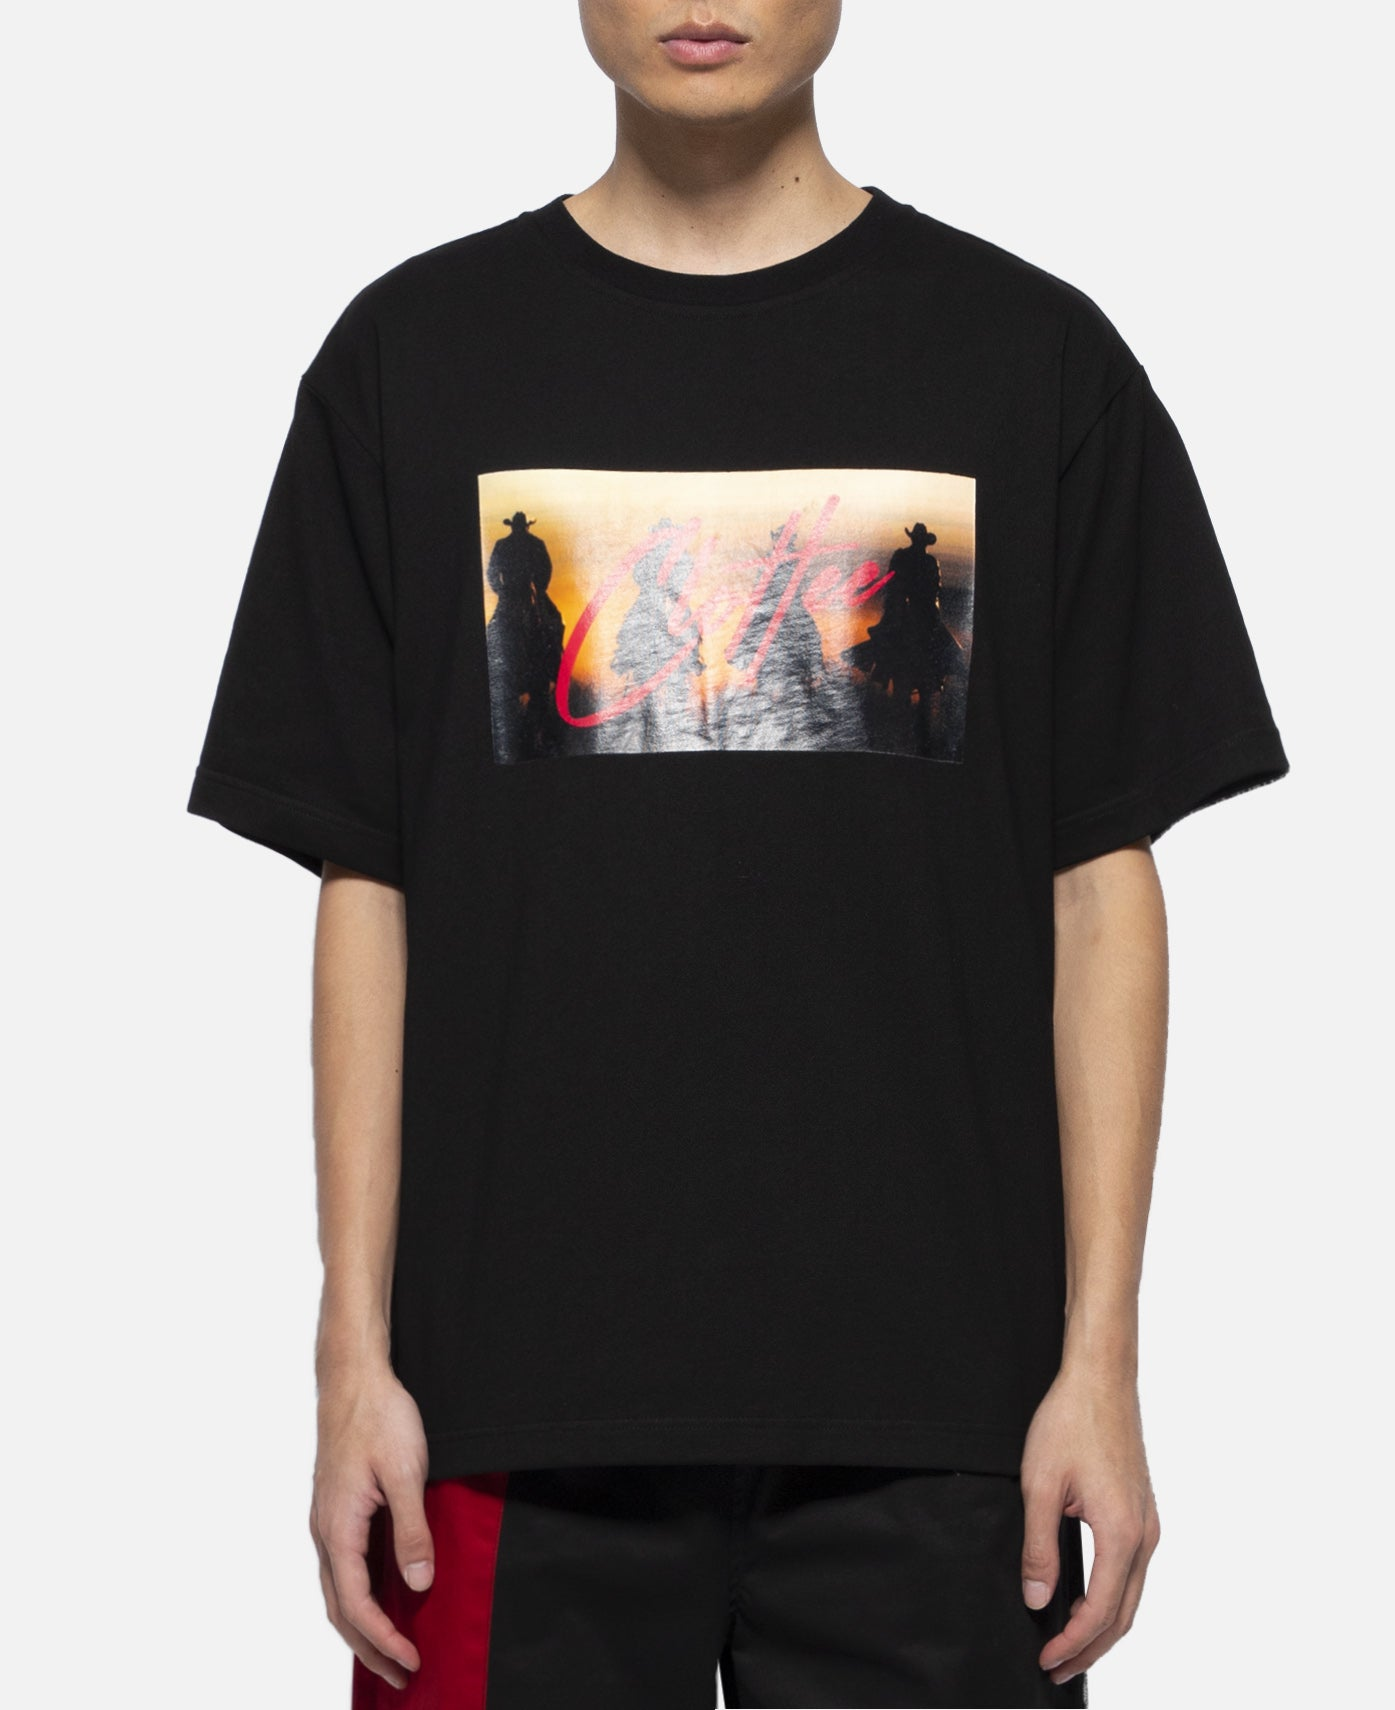 Life And Home S/S T-Shirt (Black)